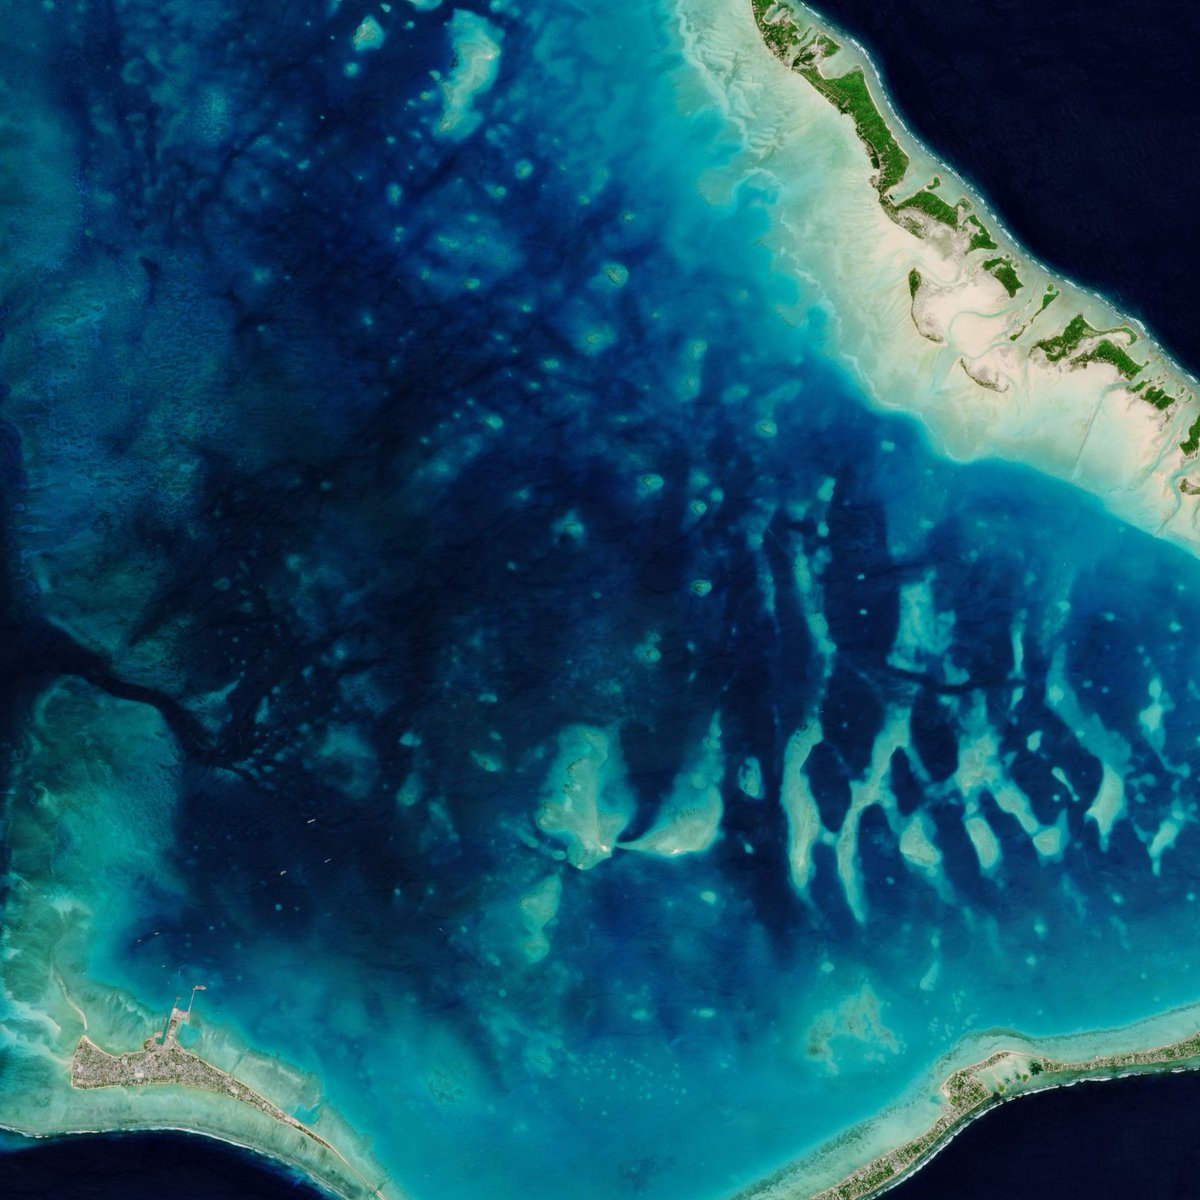 #EarthArt Sunday brings us over the turquoise waters of the Tarawa Atoll in the Republic of Kiribati😍 Kiribati is one of the lowest-lying nations on Earth, with many of the country's atolls and coral islands rising no higher than 2 m above sea level. ➡️